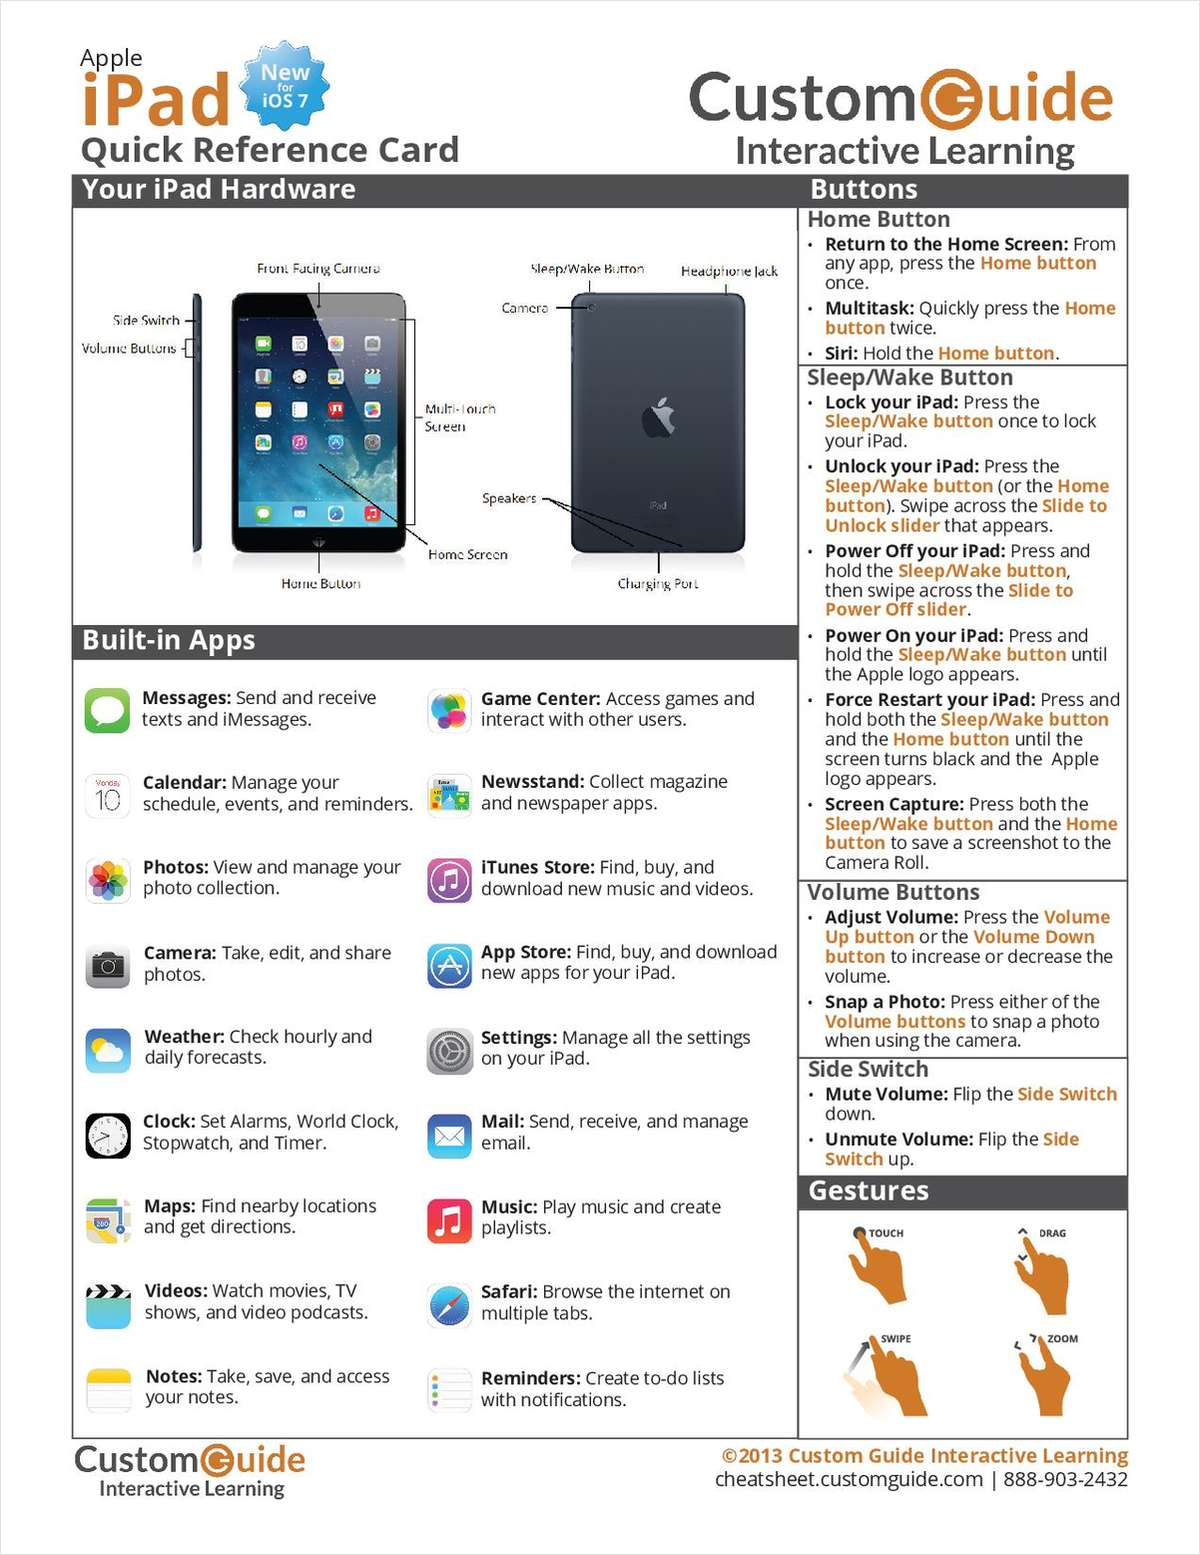 Apple iPad (New for iOS 7) -- Free Quick Reference Card